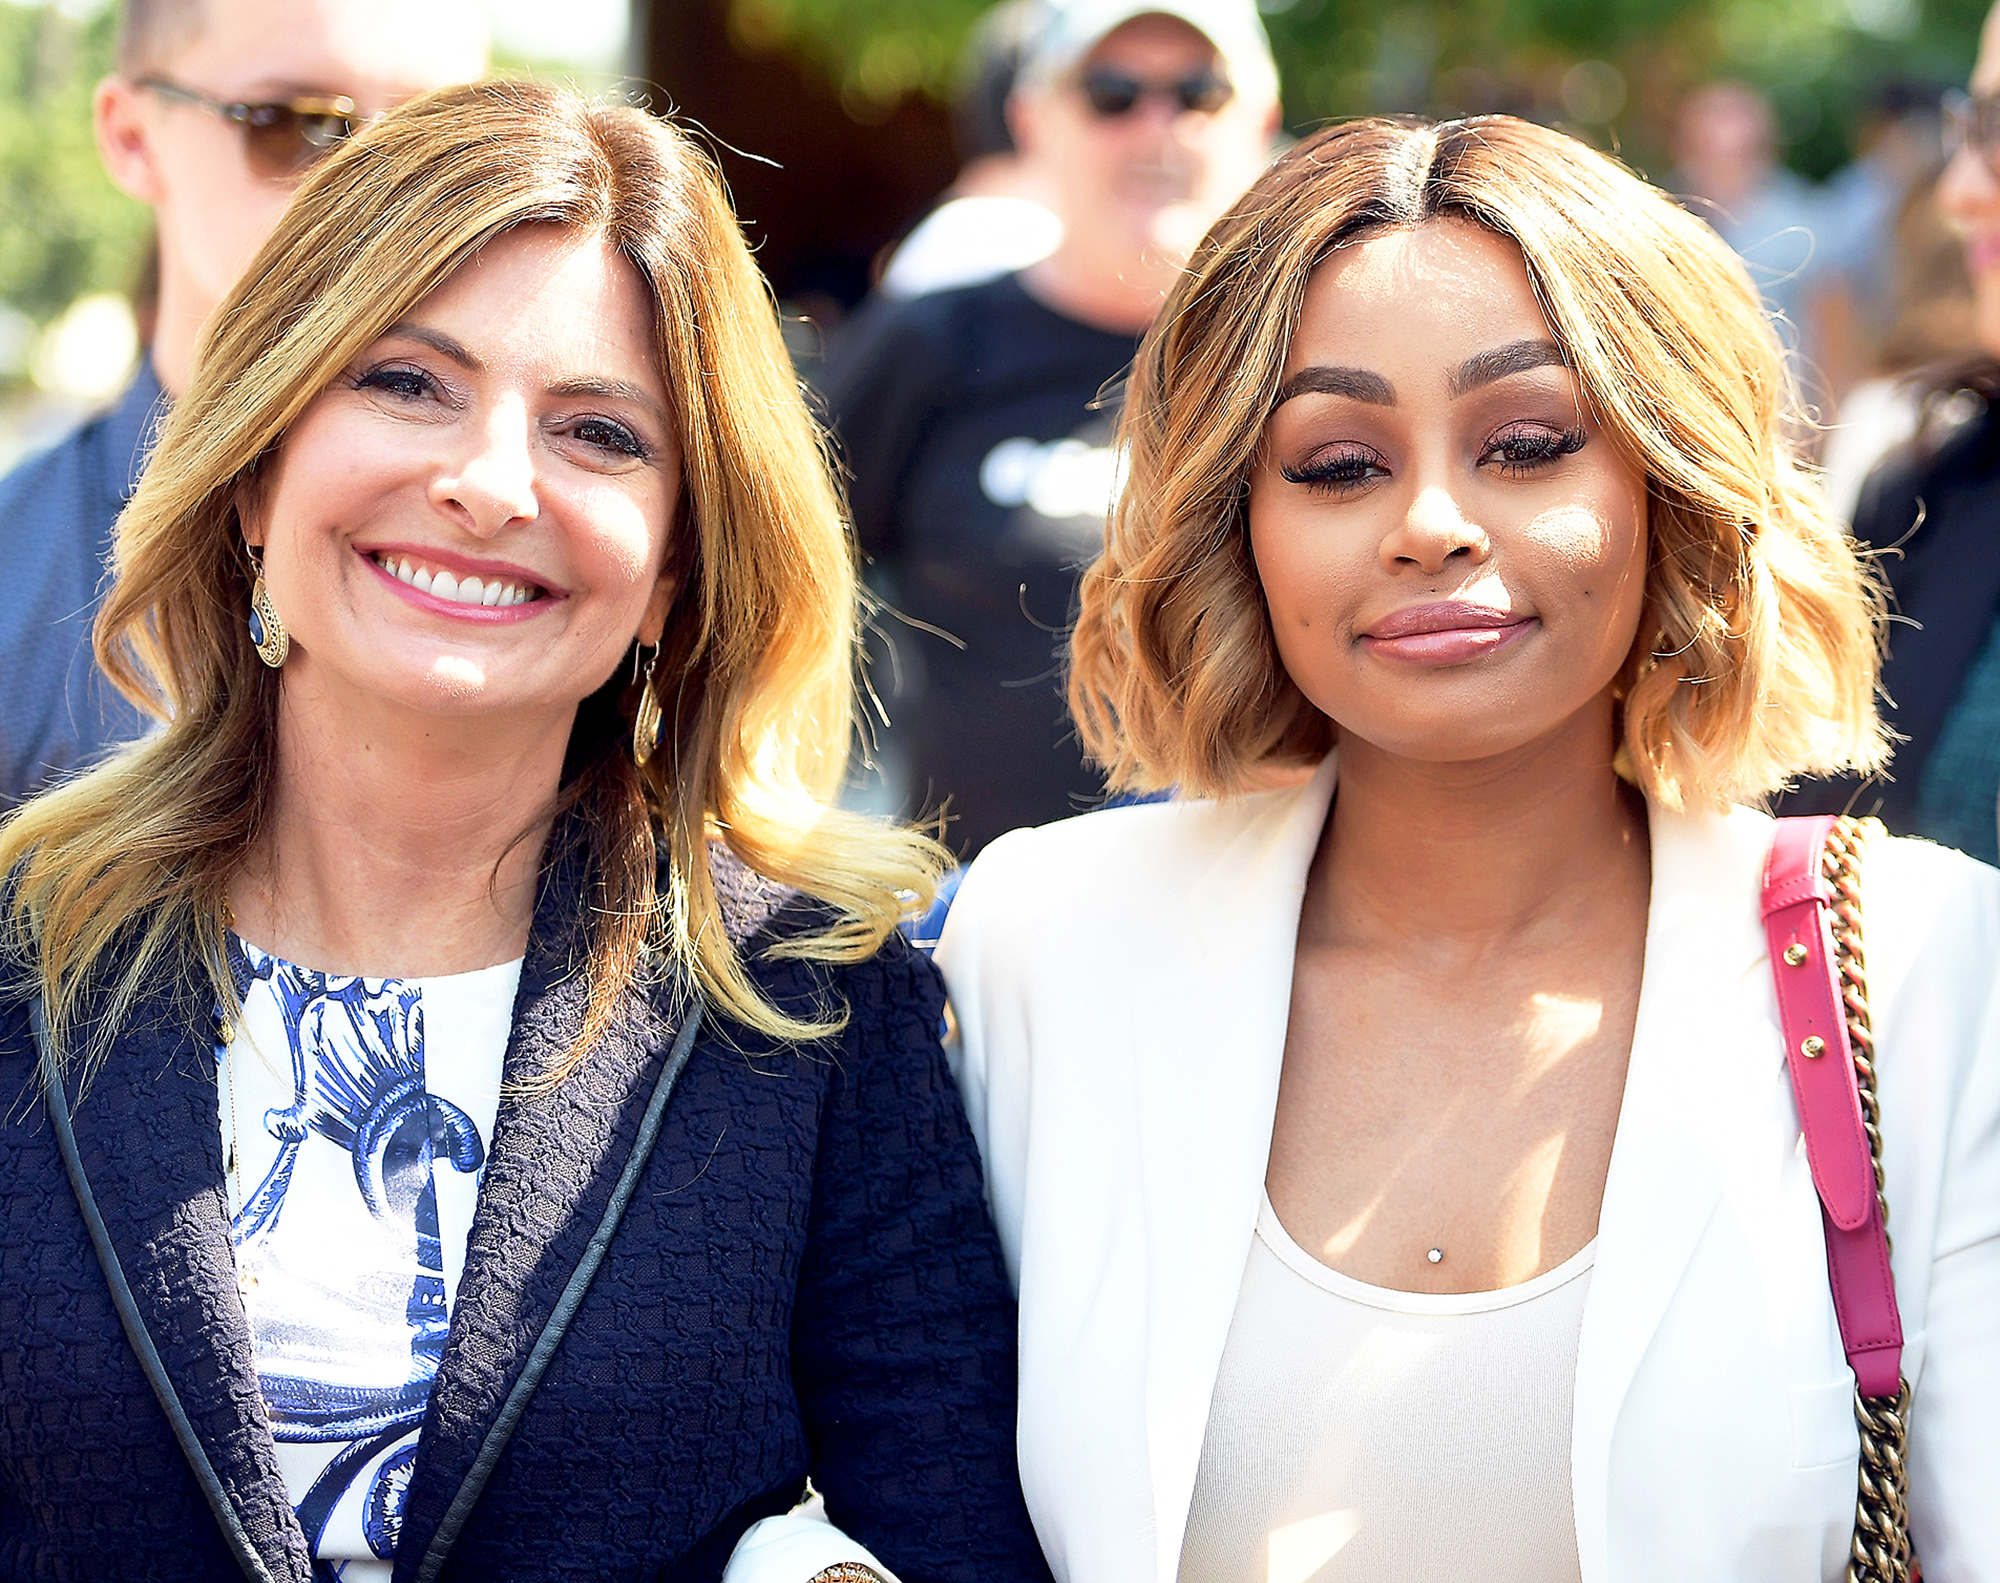 Wendy Williams Was Slapped With $1 Million Lawsuit By Blac Chyna's Mom